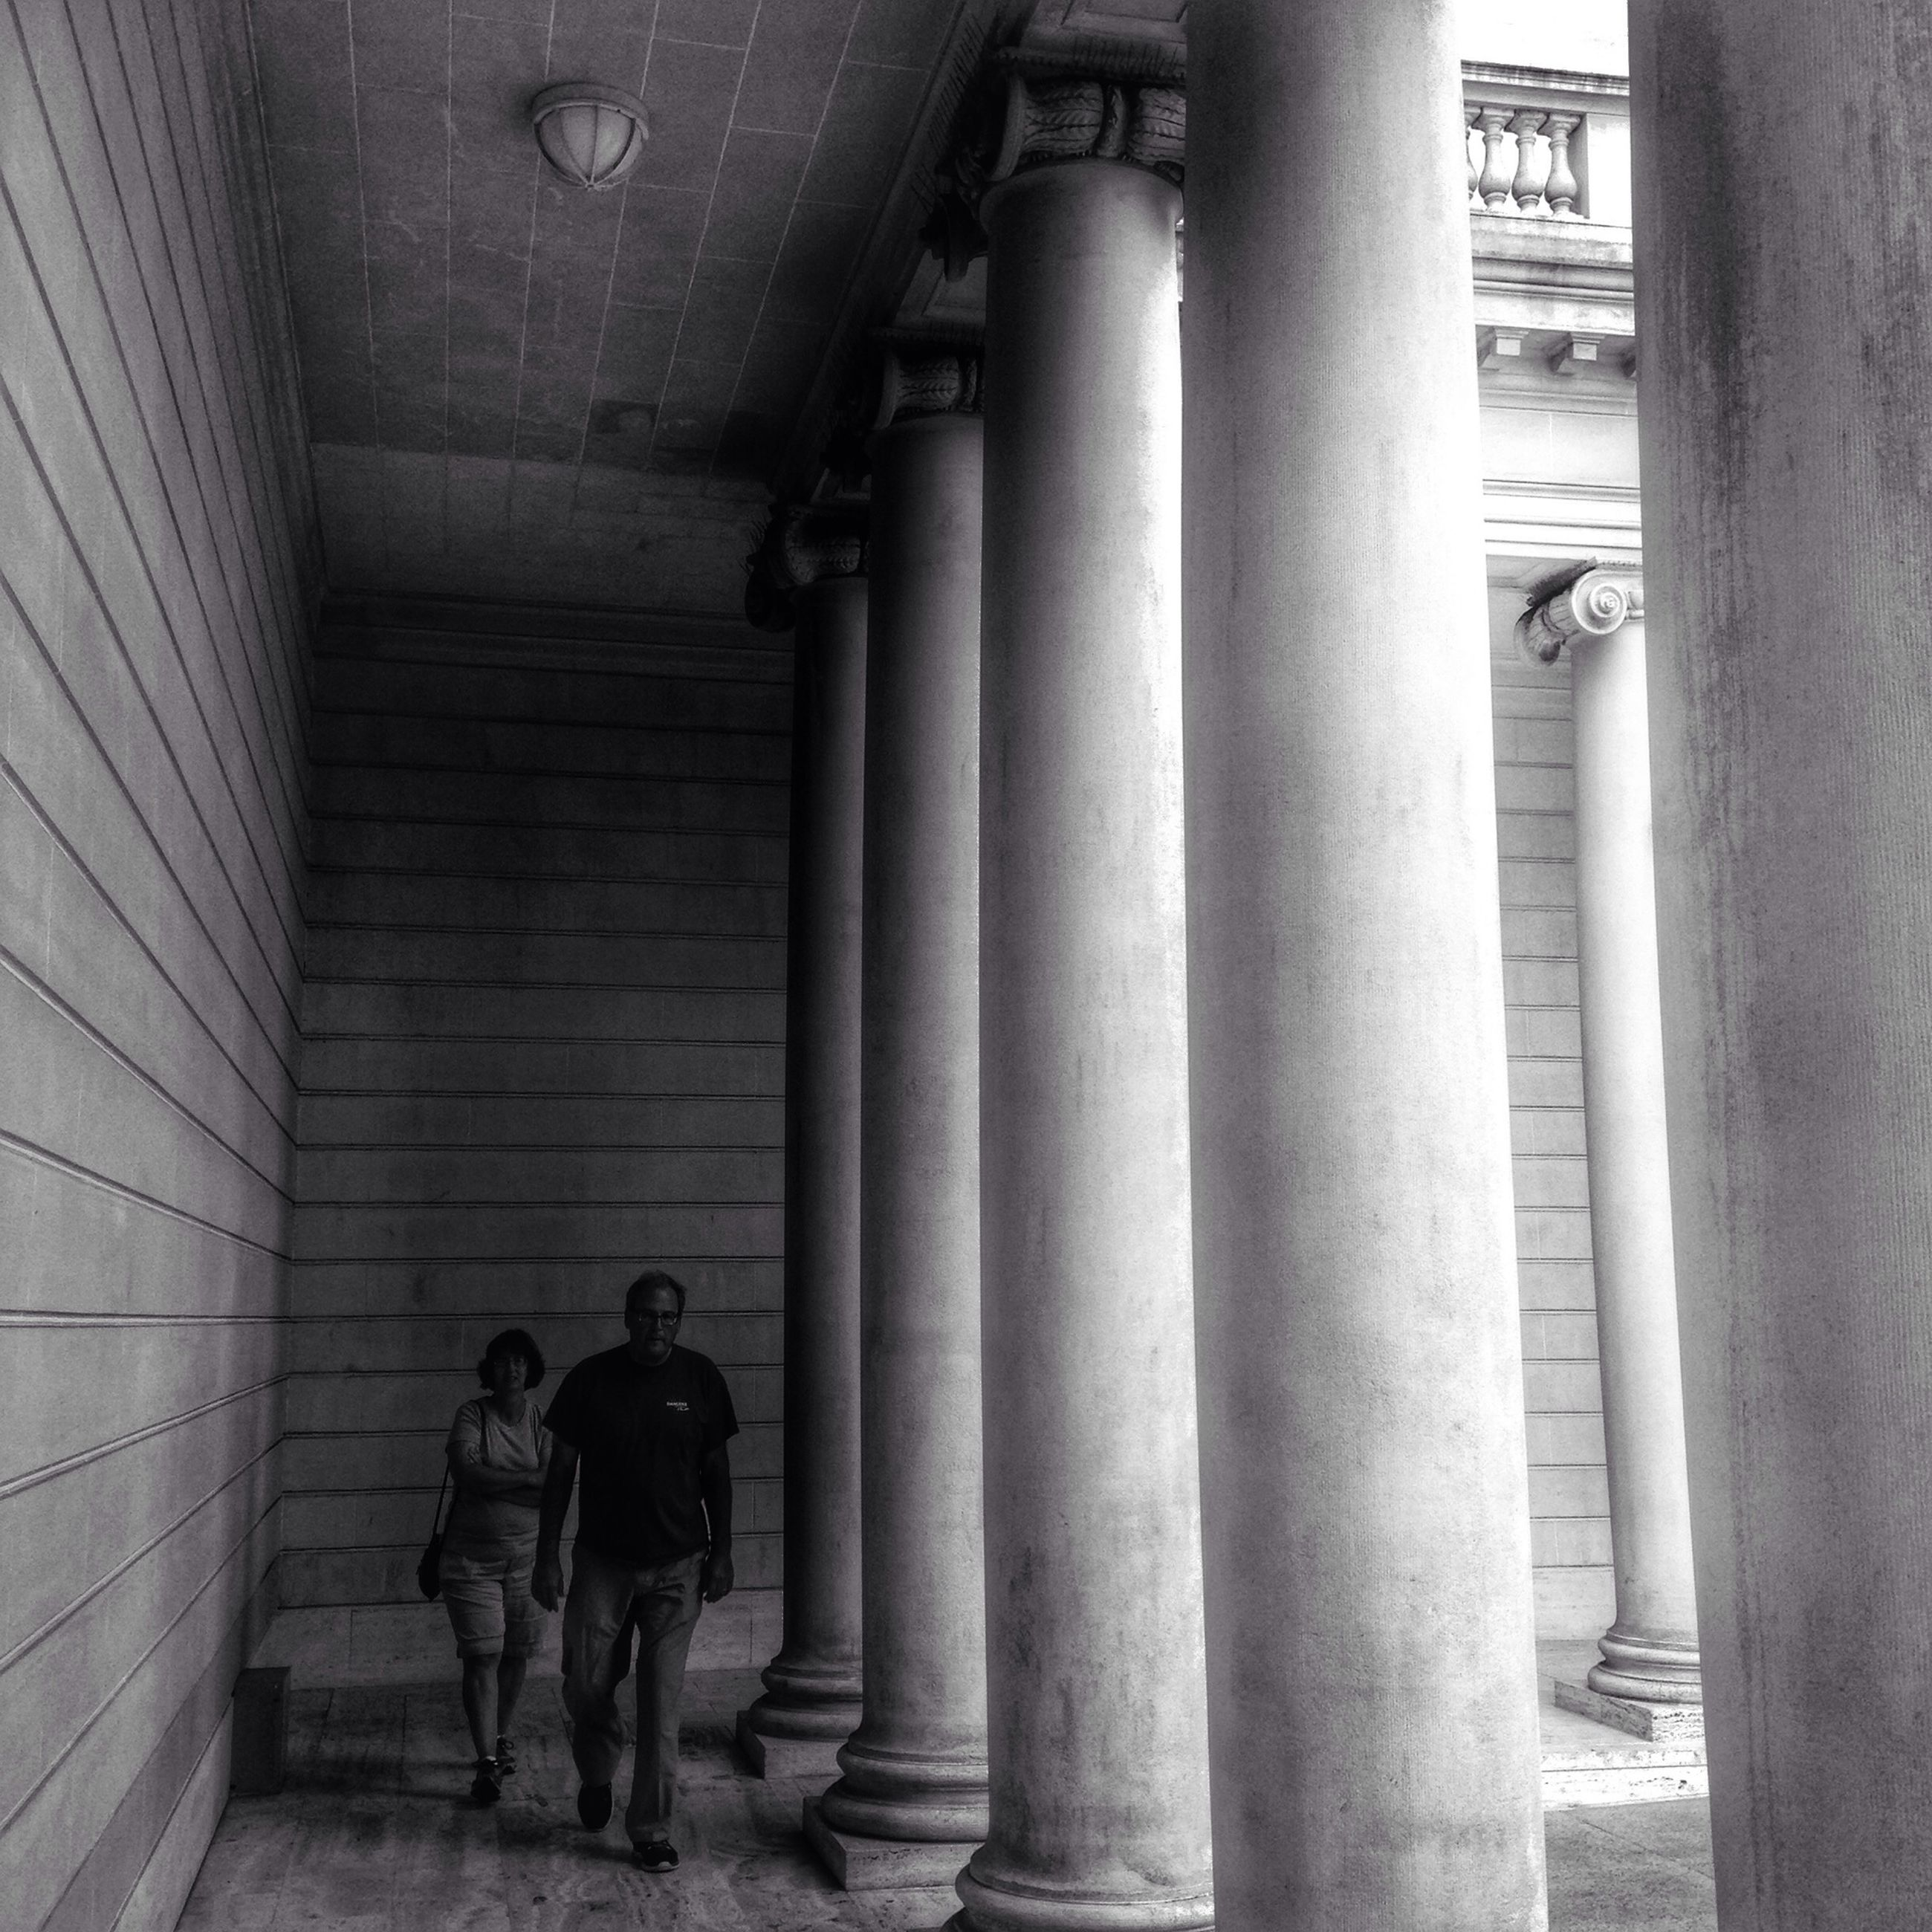 indoors, lifestyles, men, architecture, built structure, leisure activity, full length, rear view, person, architectural column, walking, history, standing, steps, column, corridor, togetherness